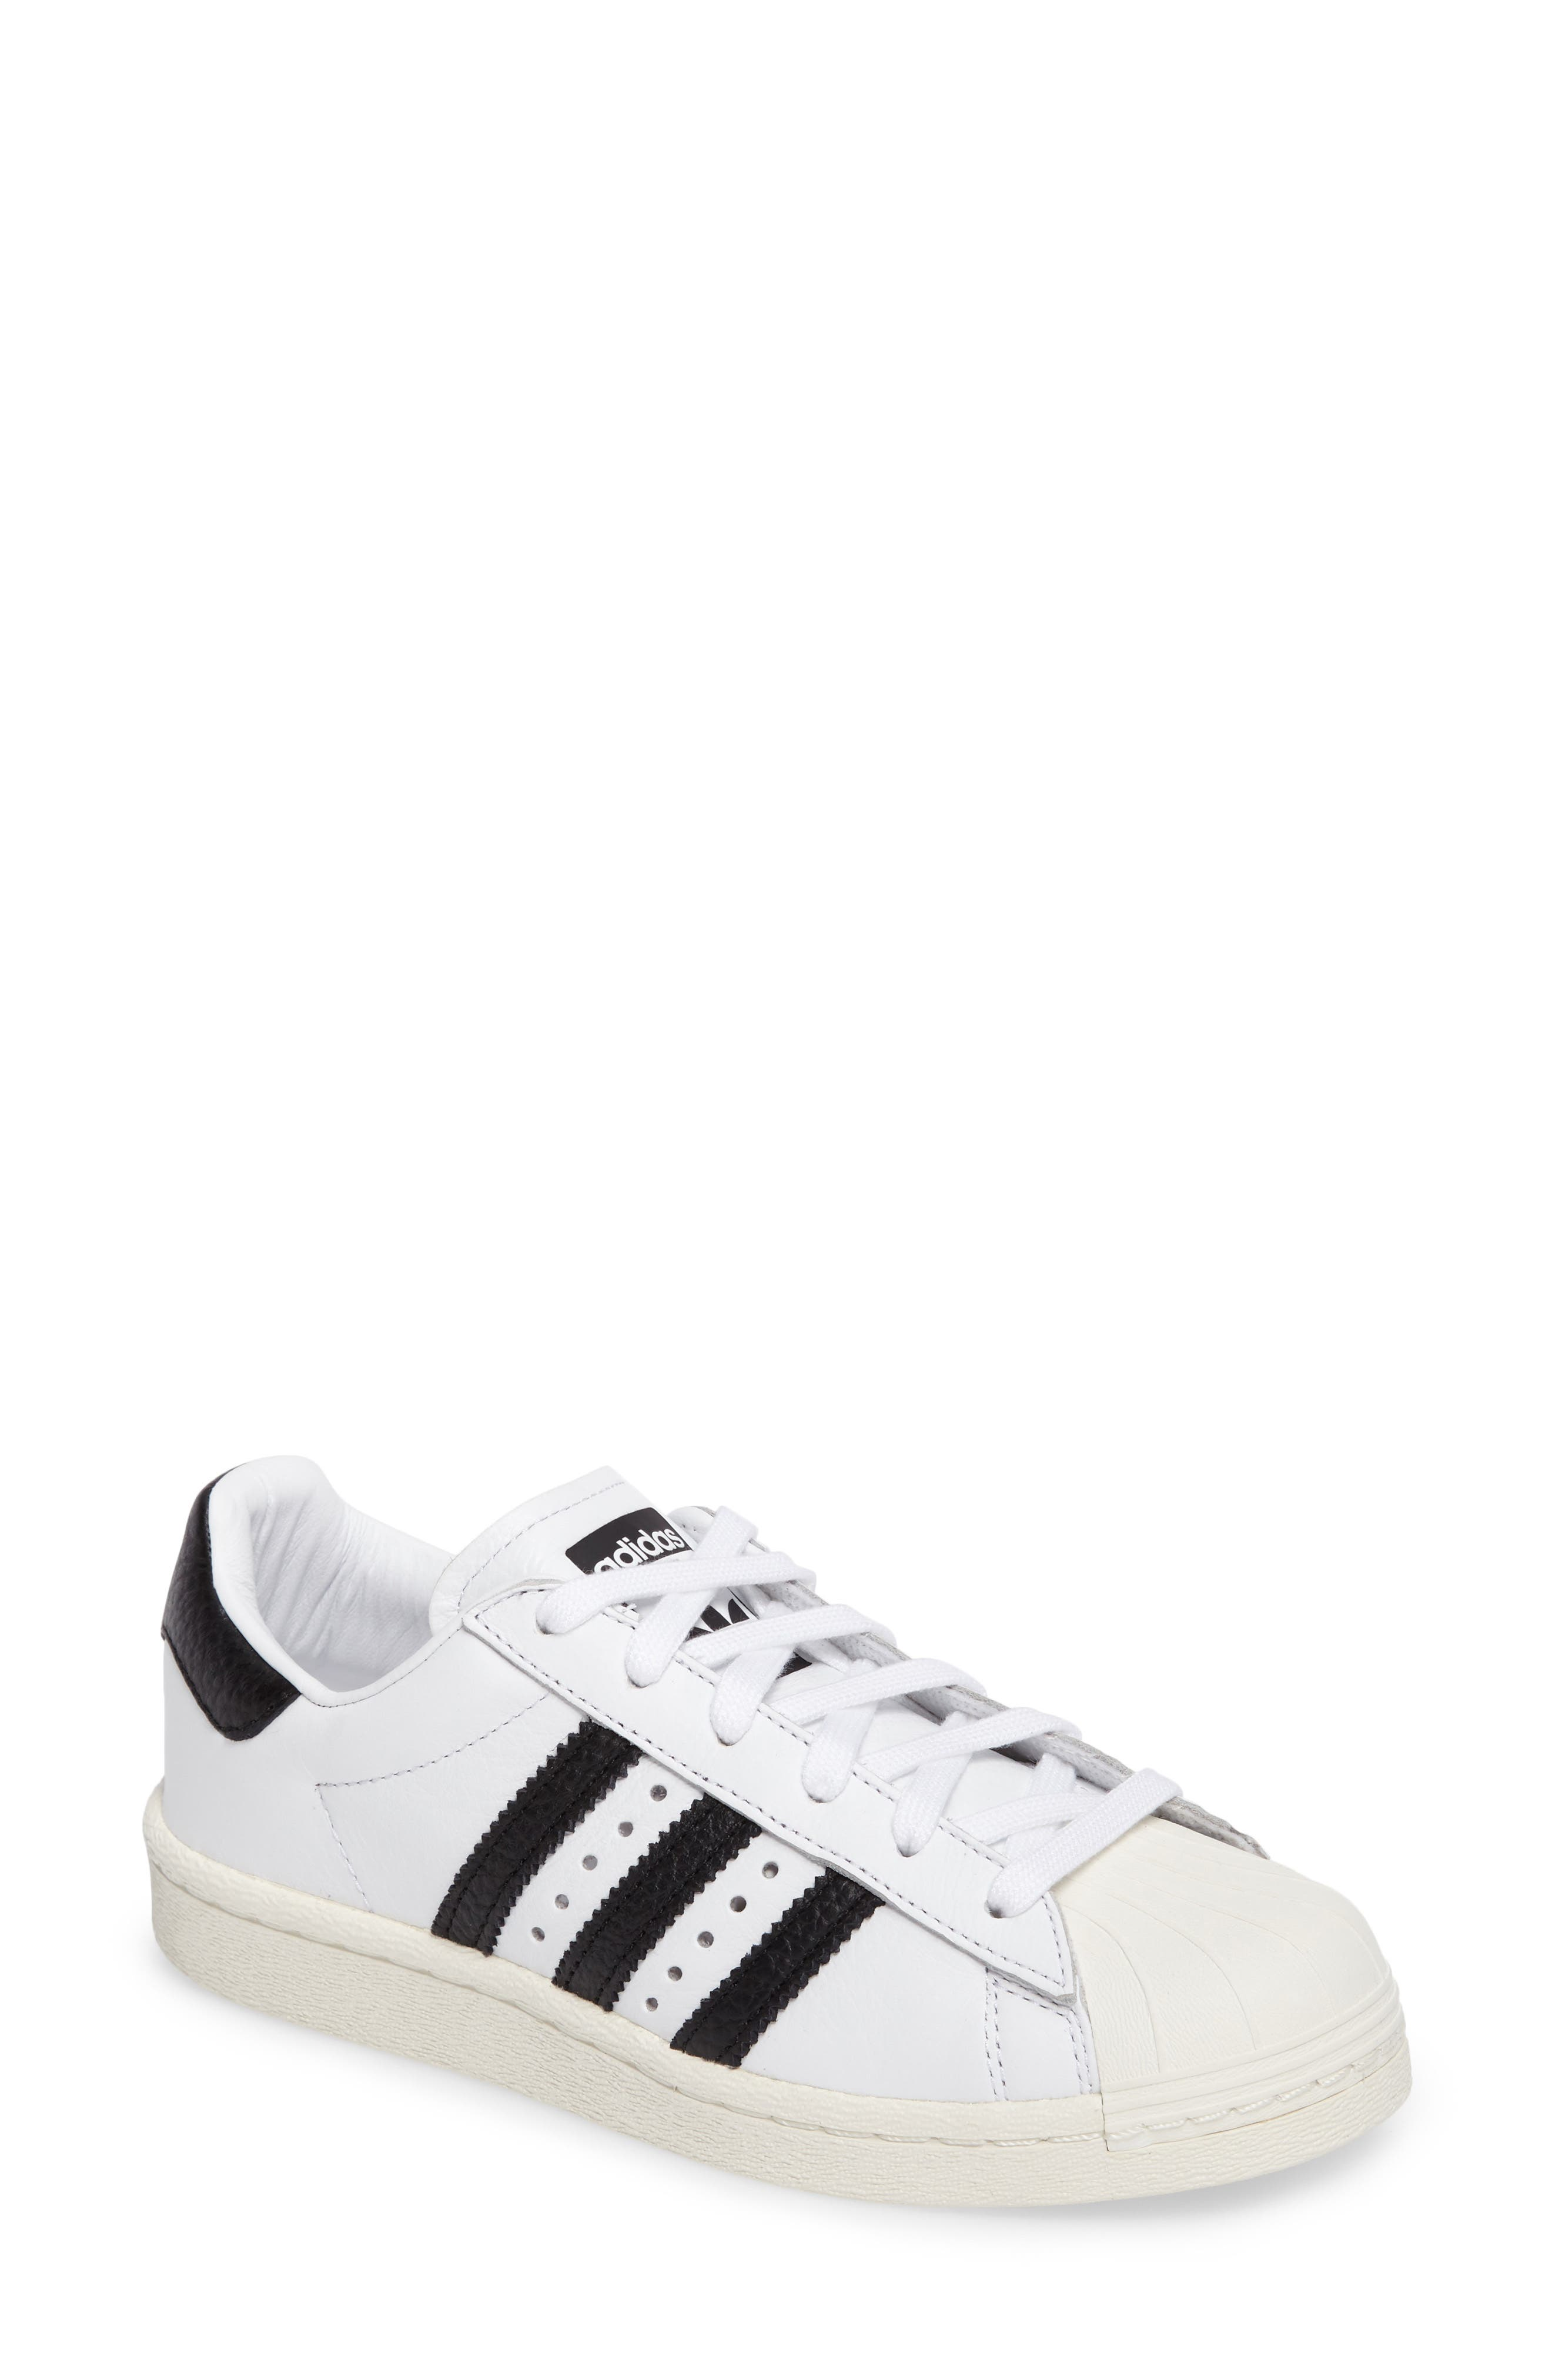 Main Image - adidas Superstar Boost Sneaker (Women)